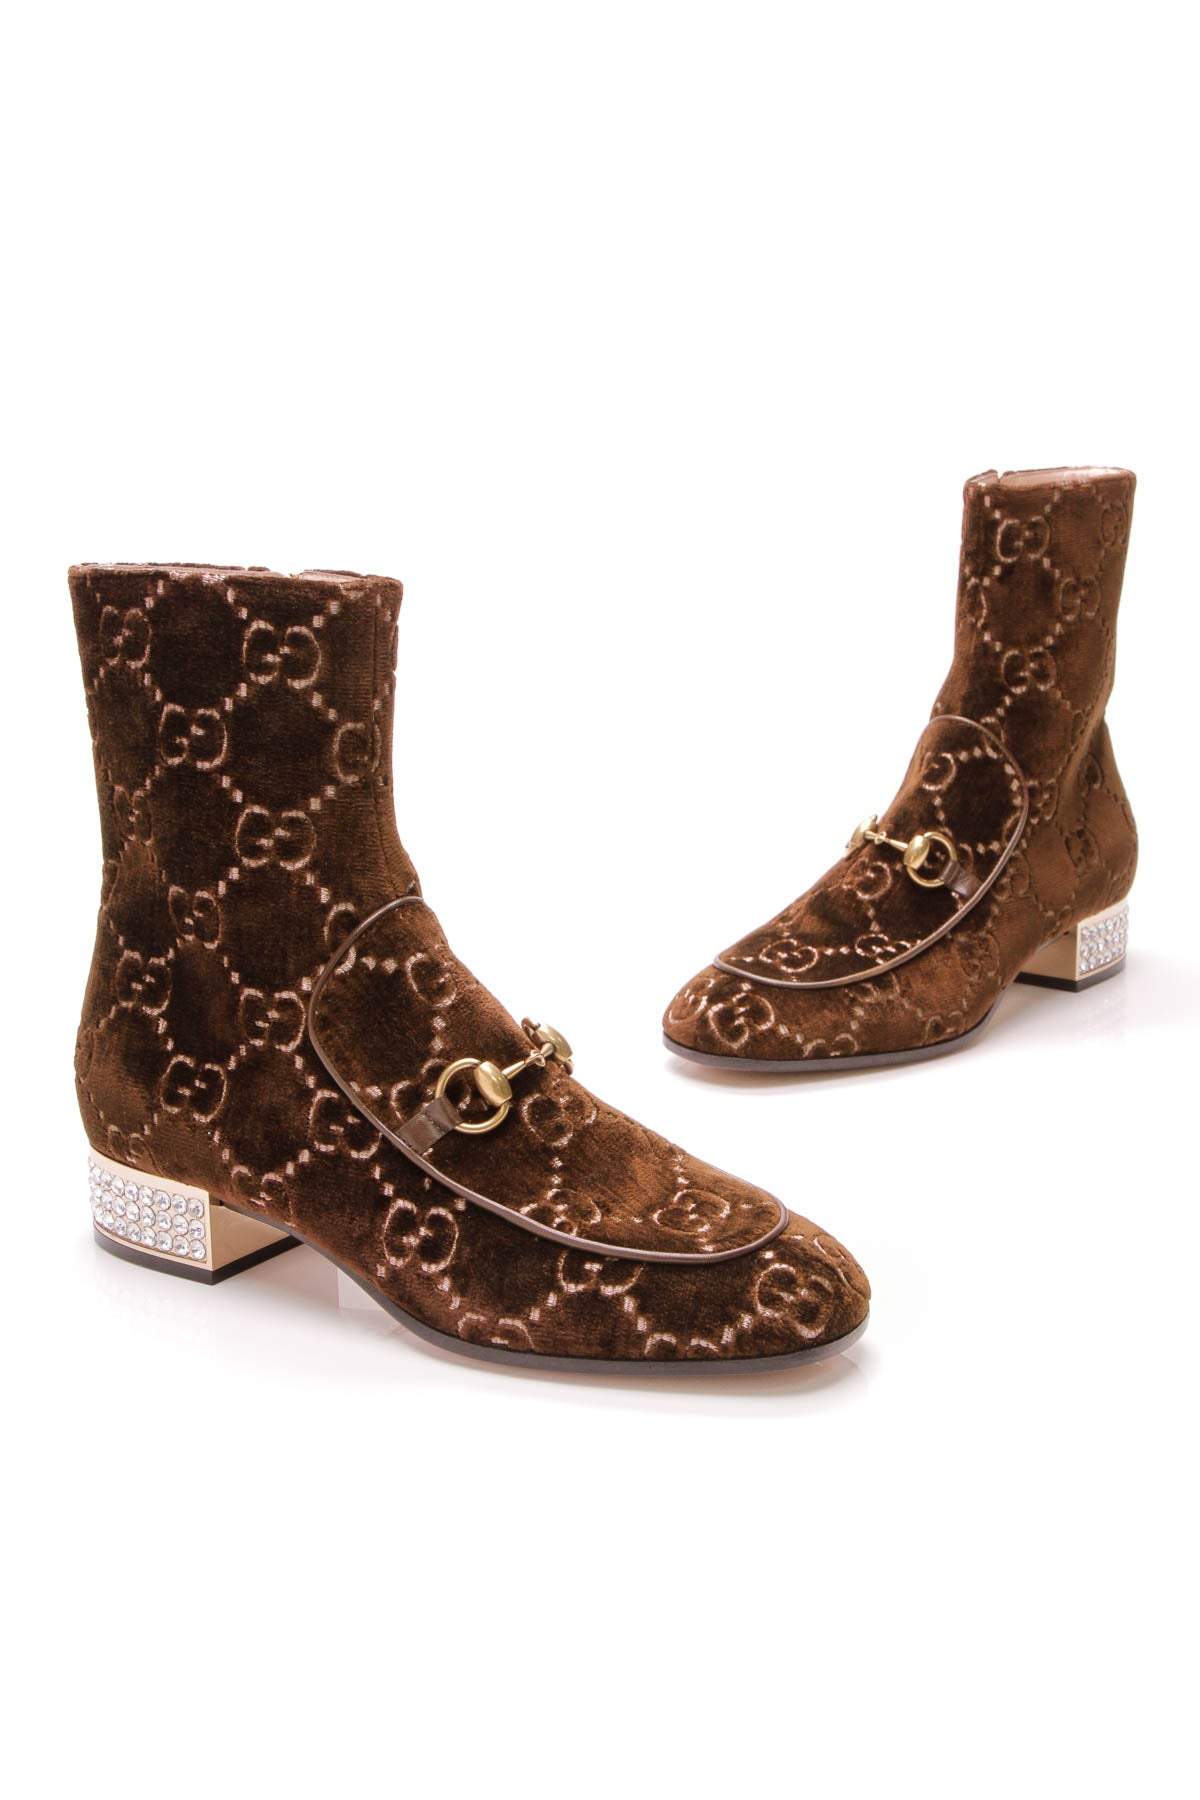 162a4f3ee Gucci Mister GG Booties - Brown Embossed Velvet Size 39 – Couture USA